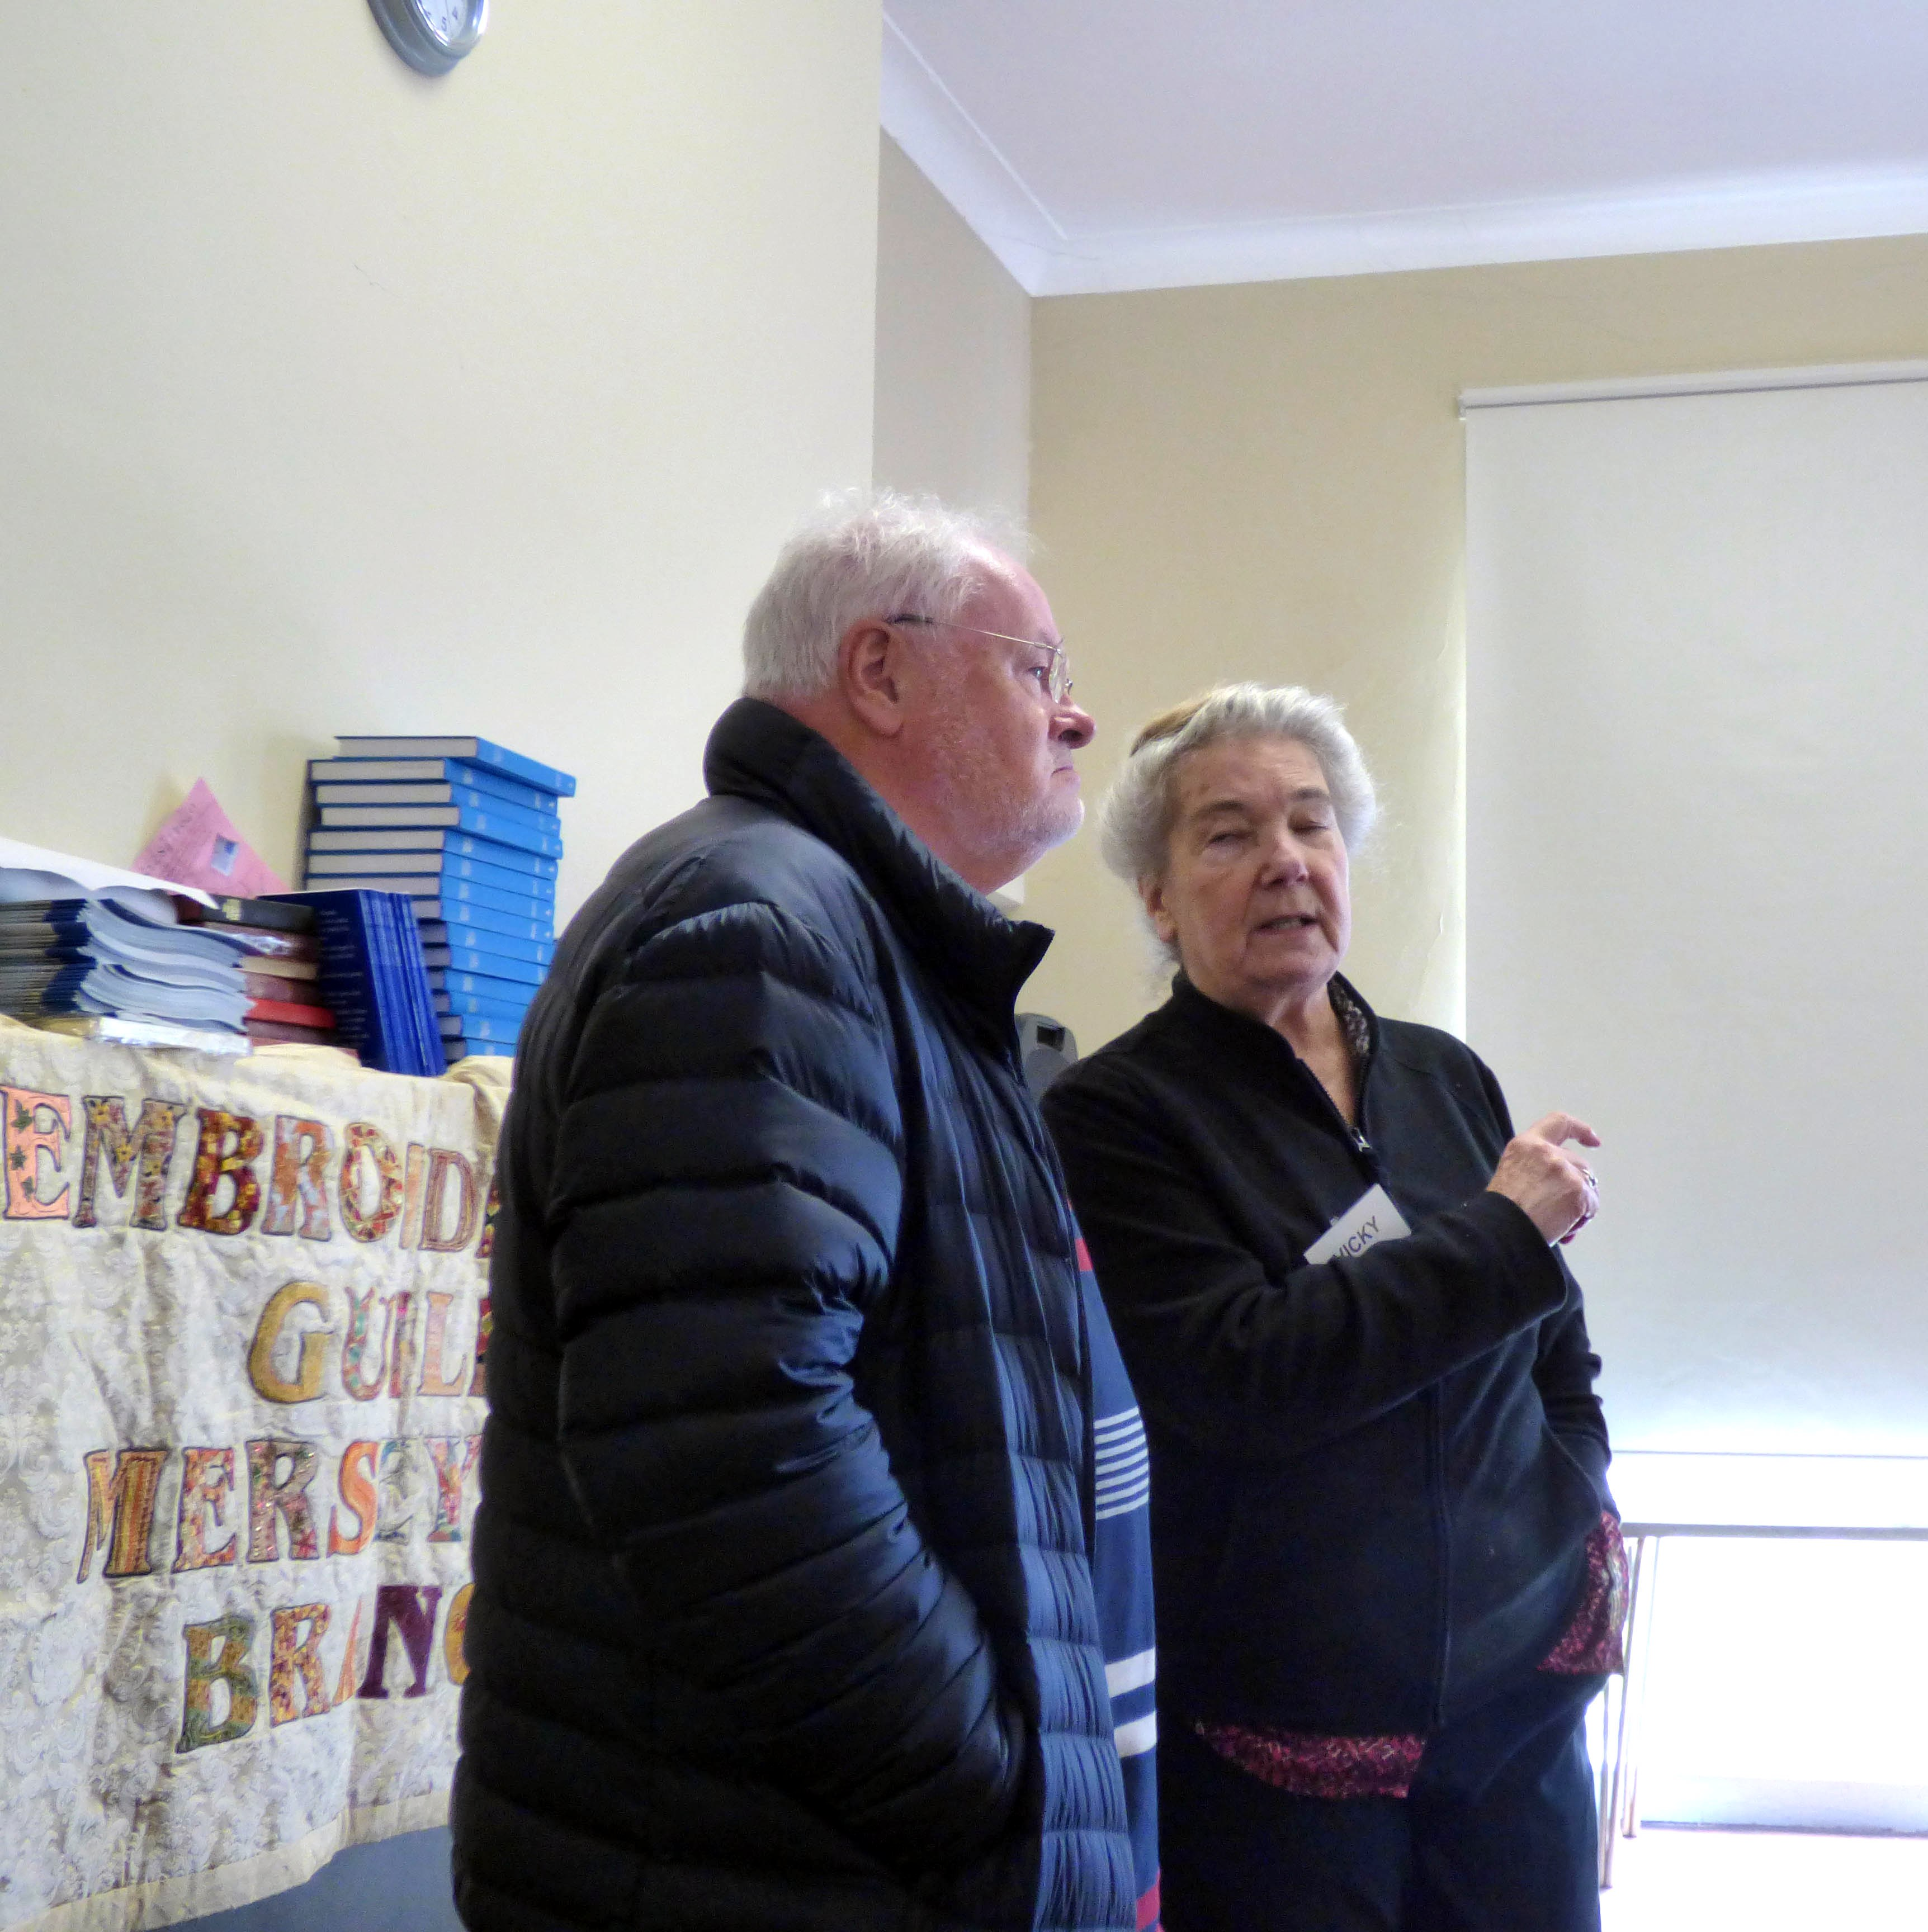 Terry Murphy, CEO of the Embroiderers' Guild with MEG Chair Vicky Williams, March 2018